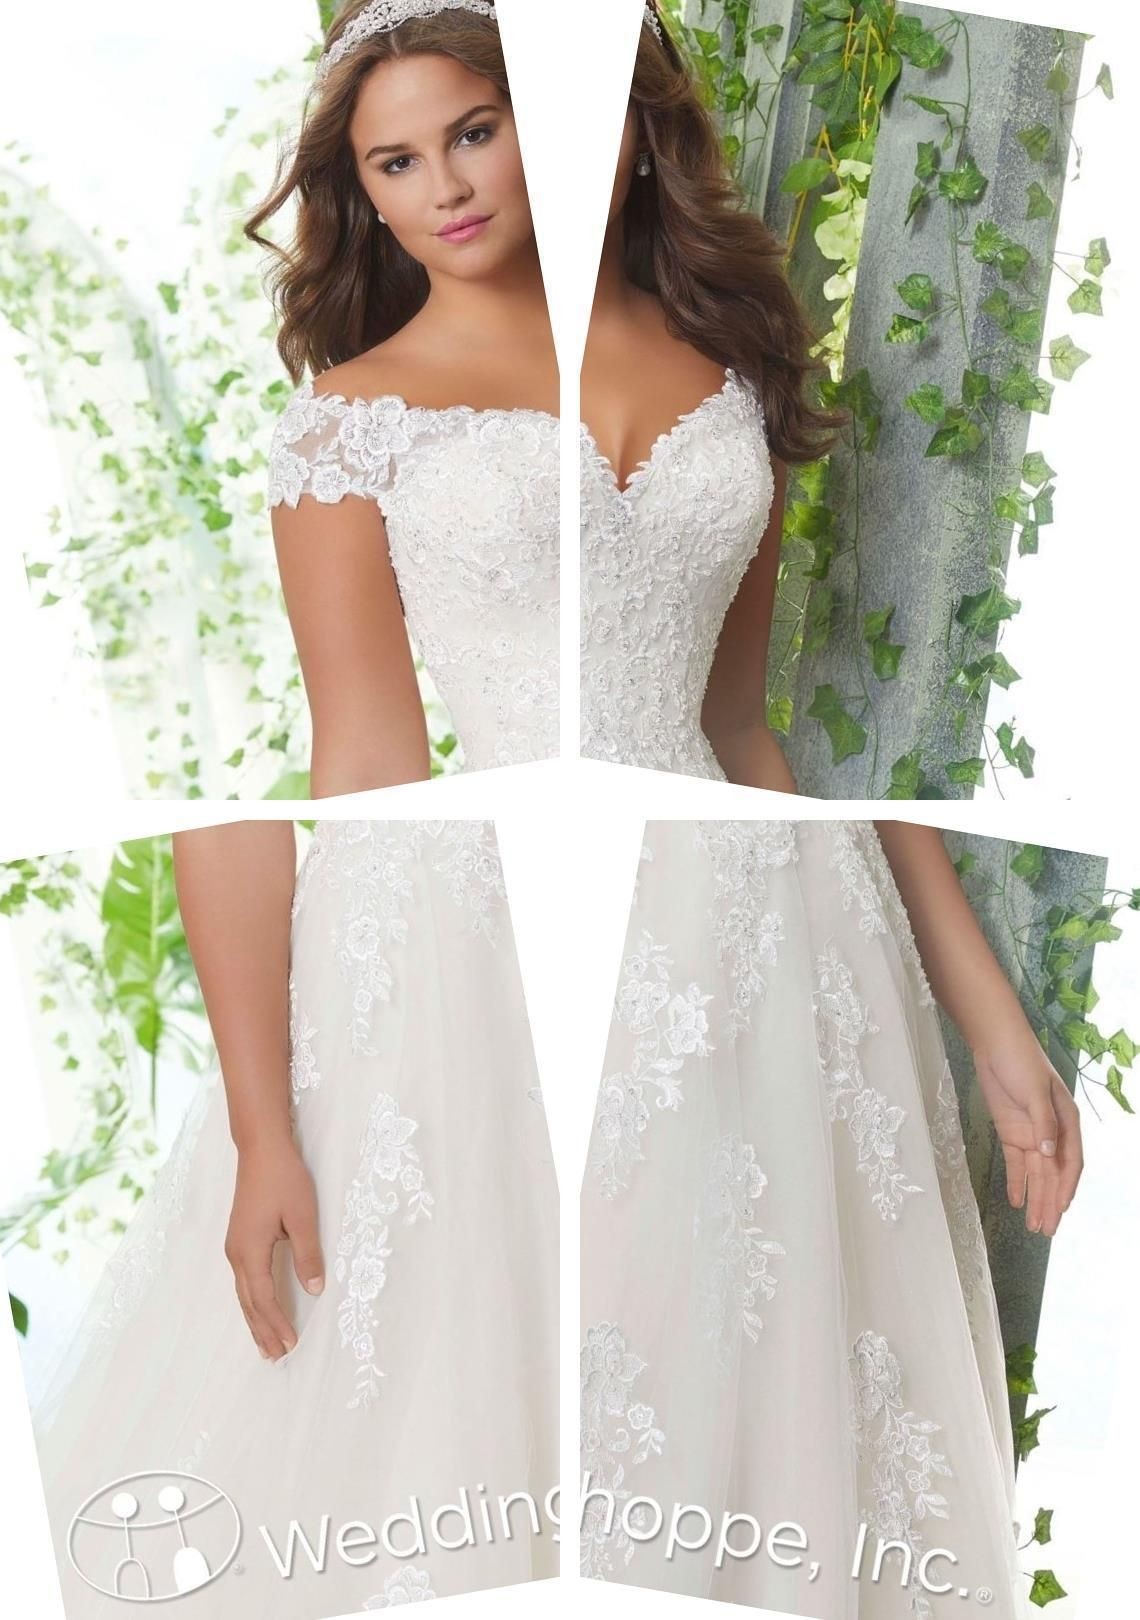 Gowns For Weddings Cheap Wedding Dress Stores Open Back Wedding Dresses For Sale In 2020 Wedding Dresses Wedding Dress Store Dresses